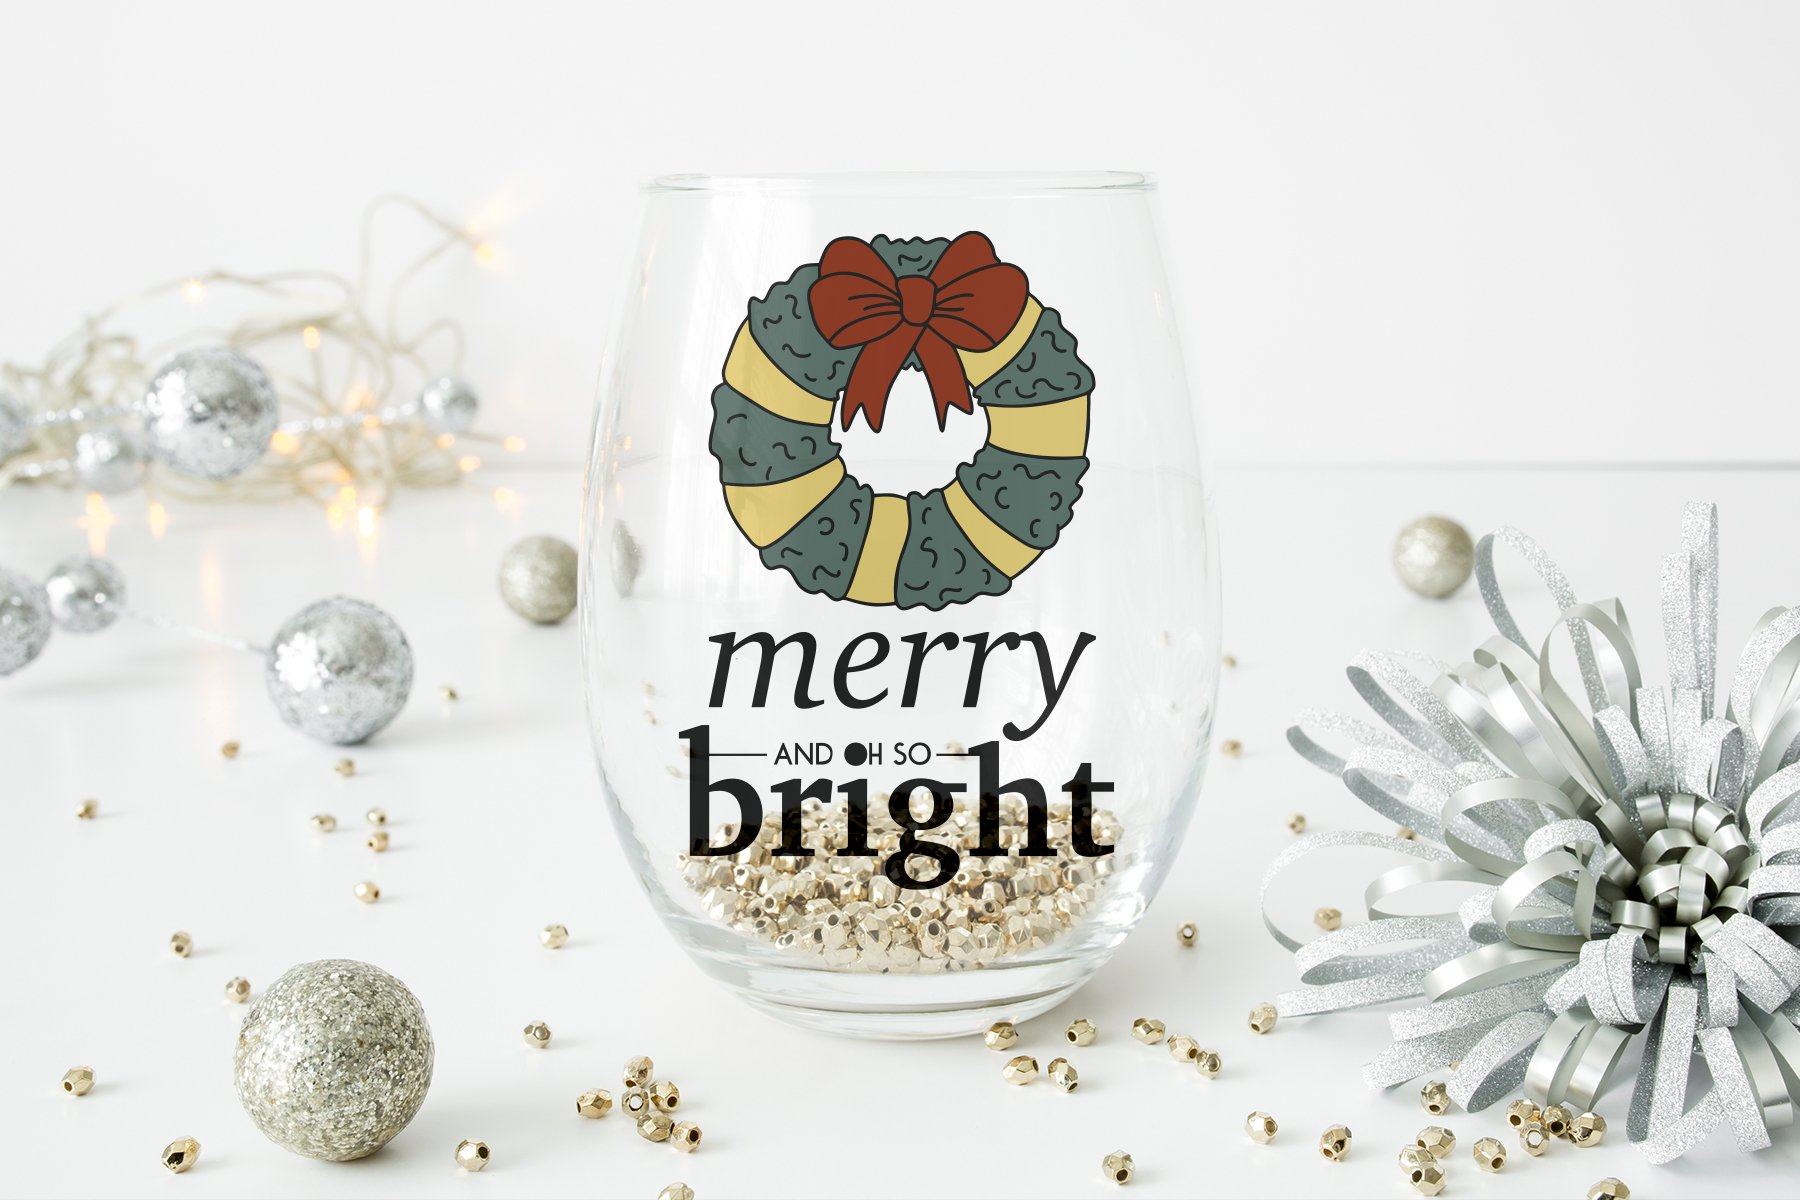 Merry and Bright SVG | Christmas Wreath SVG example image 2